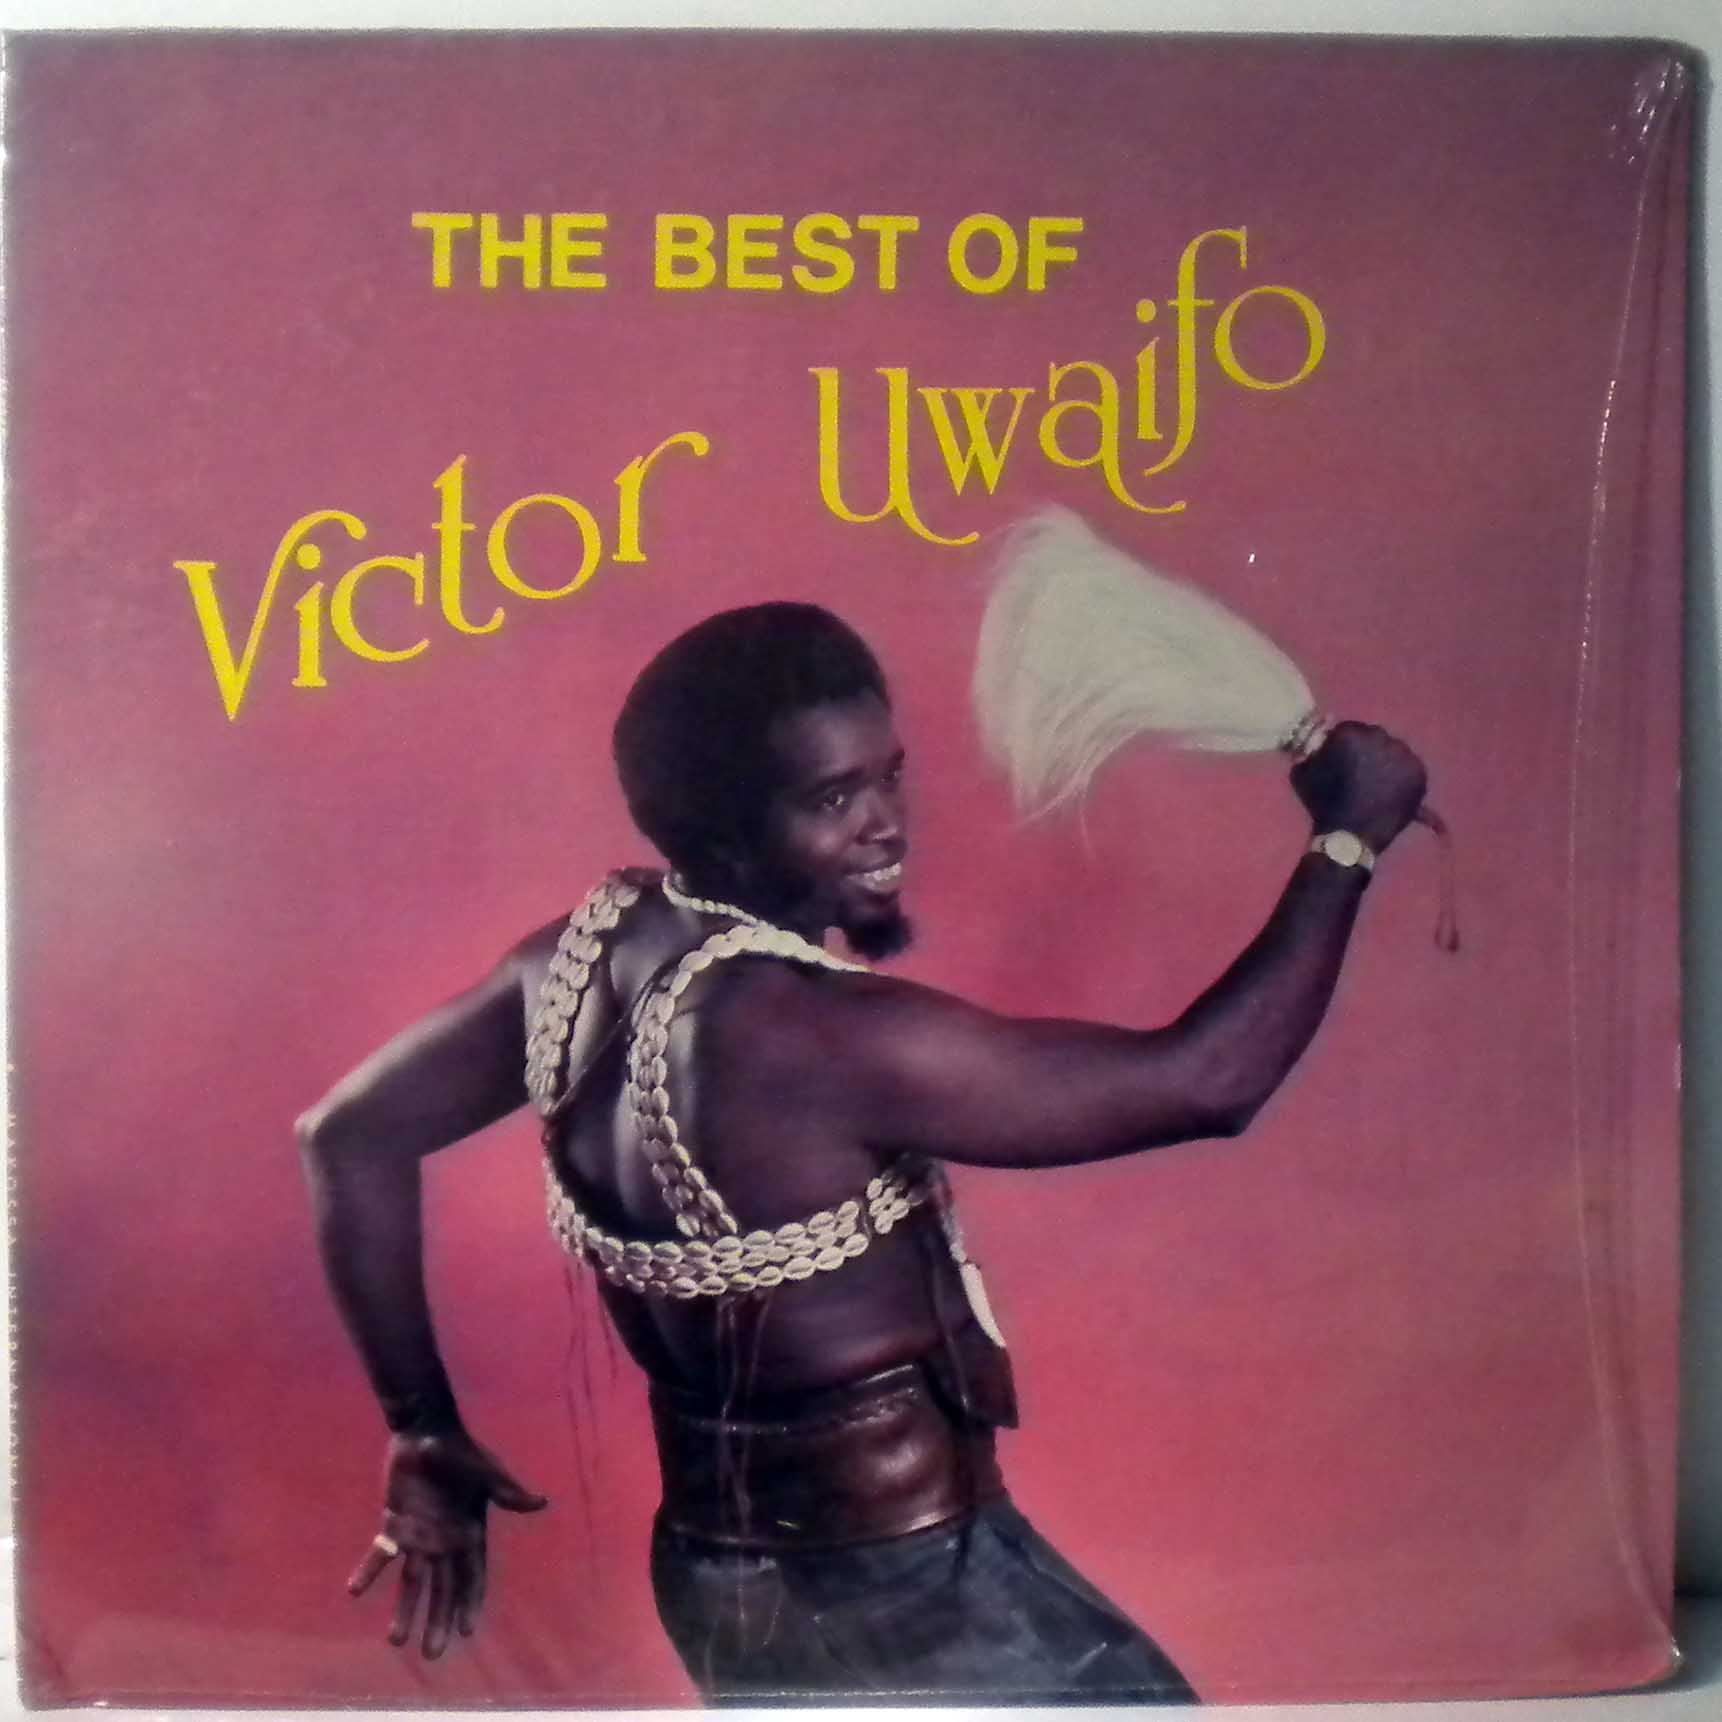 SIR VICTOR UWAIFO - The best of - LP